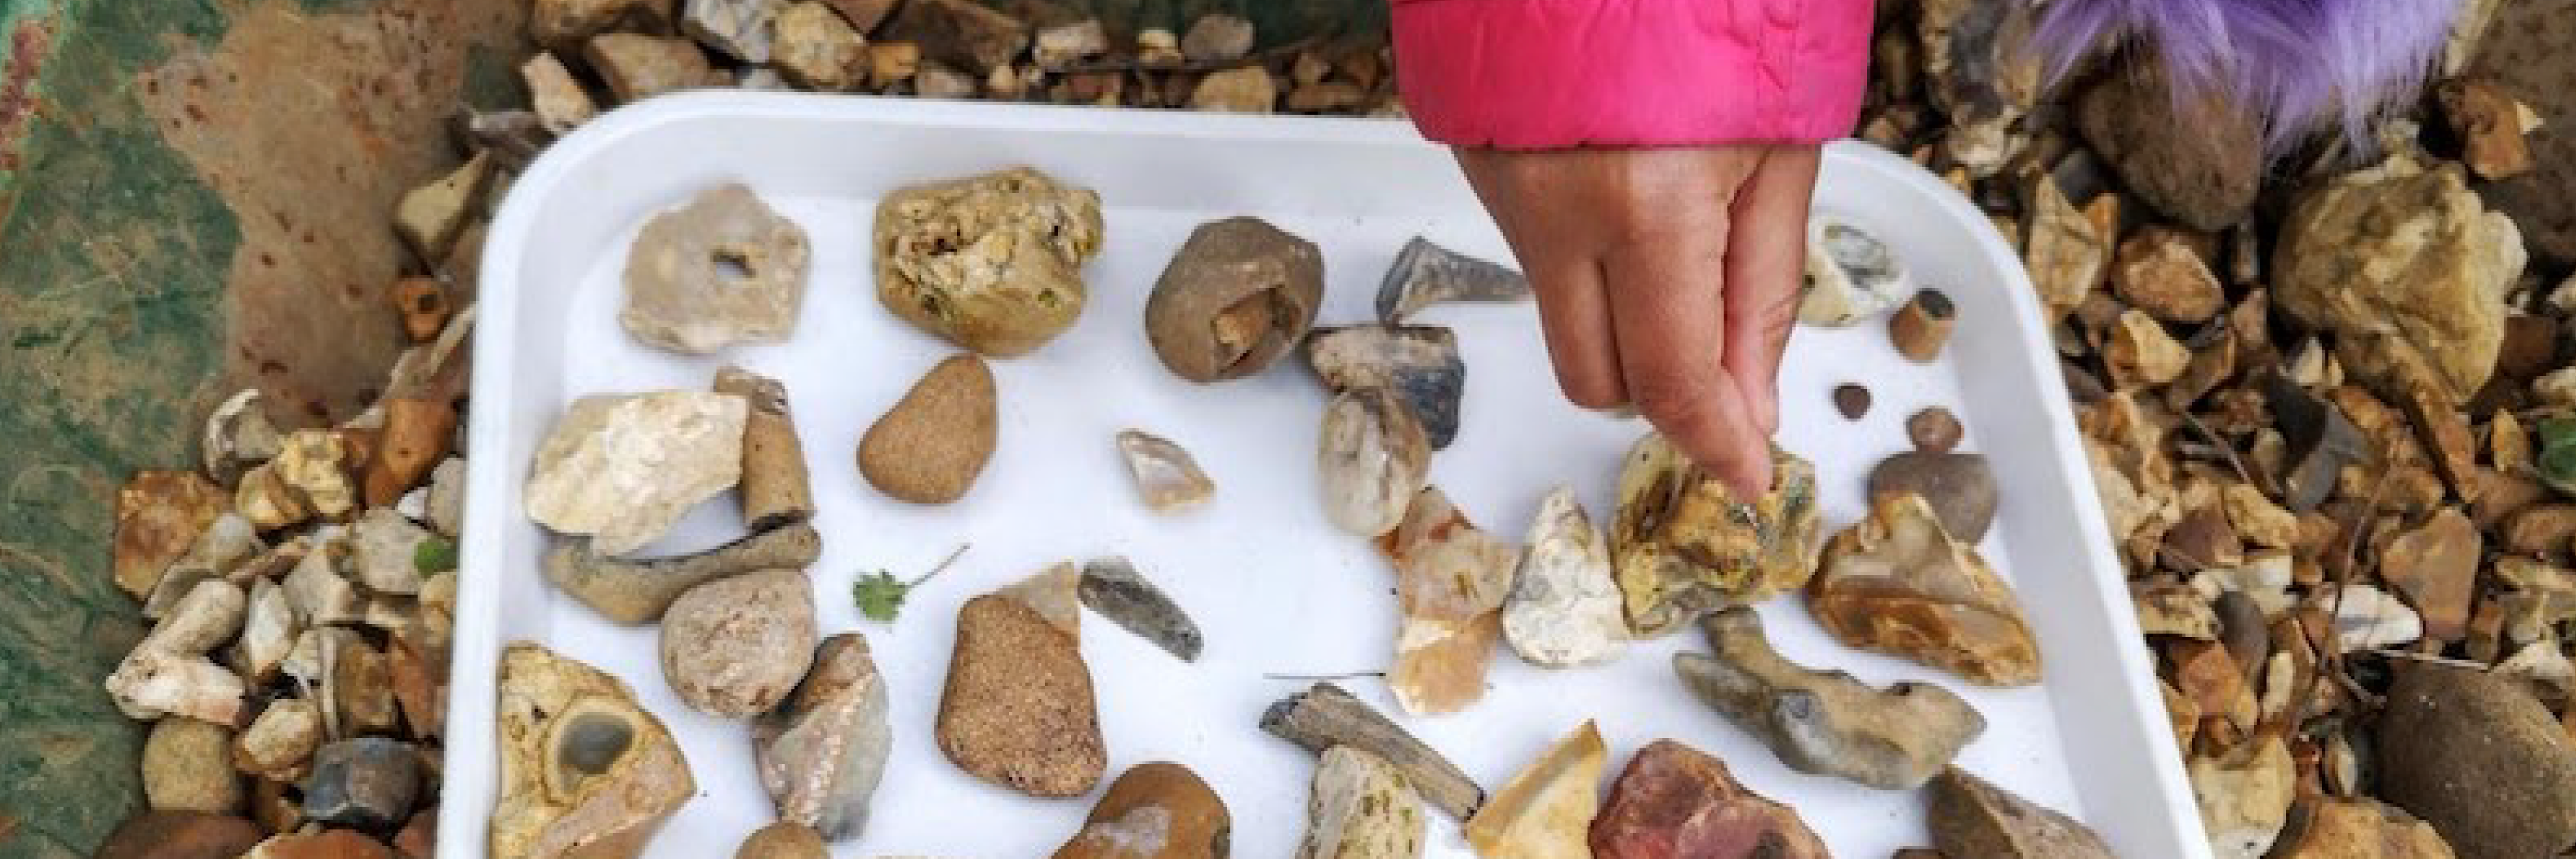 Image of a childs hand sorting through a tray of gravel, looking for fossils